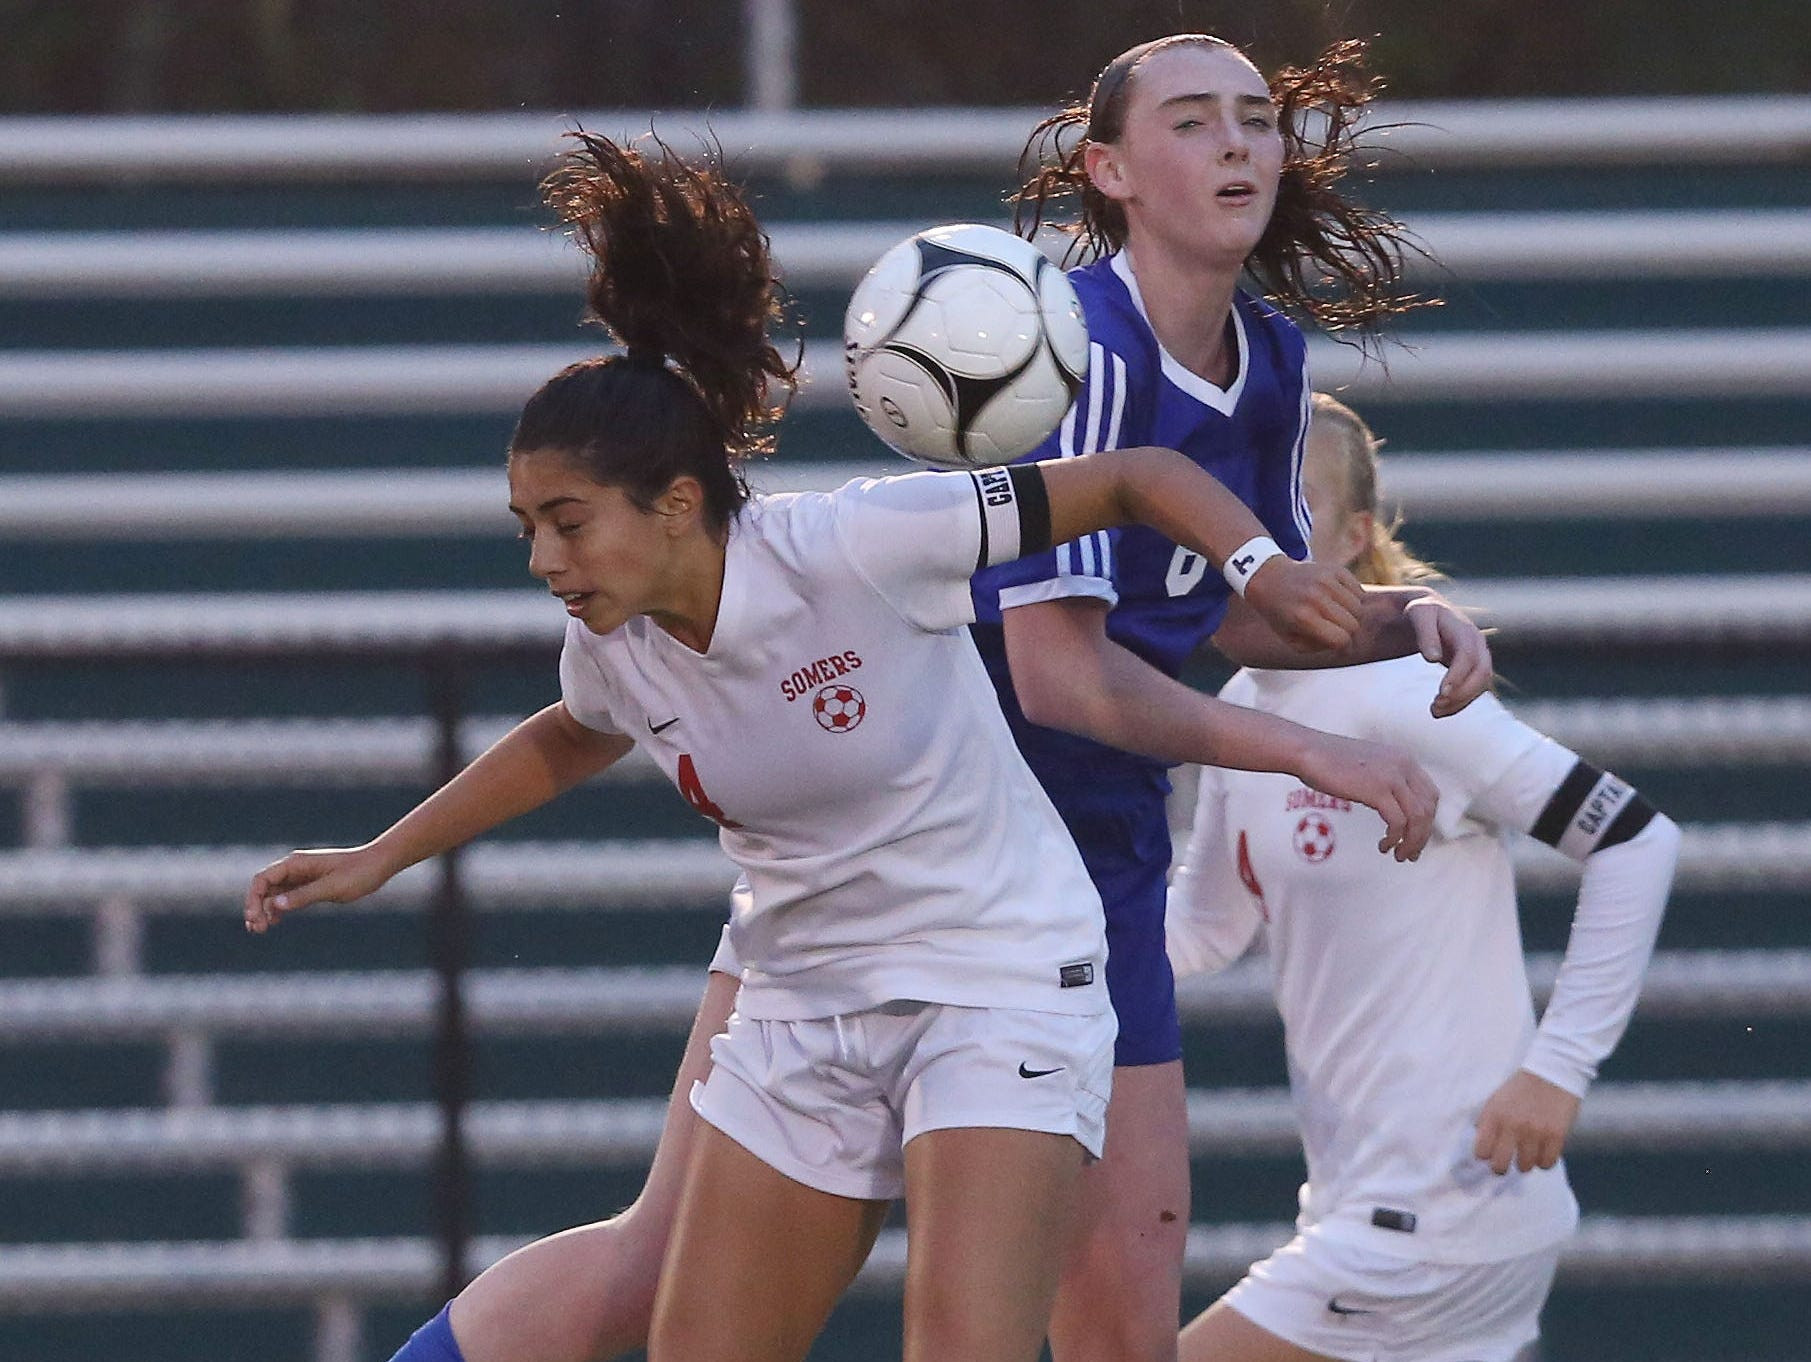 From left, Somers' Ciara Ostrander (4) and Pearl River's Sarah Donovan (6) battle for ball control during the girls soccer Section 1 Class AA championship game at Yorktown High School Oct. 30, 2016. Pearl River won the game 2-1.